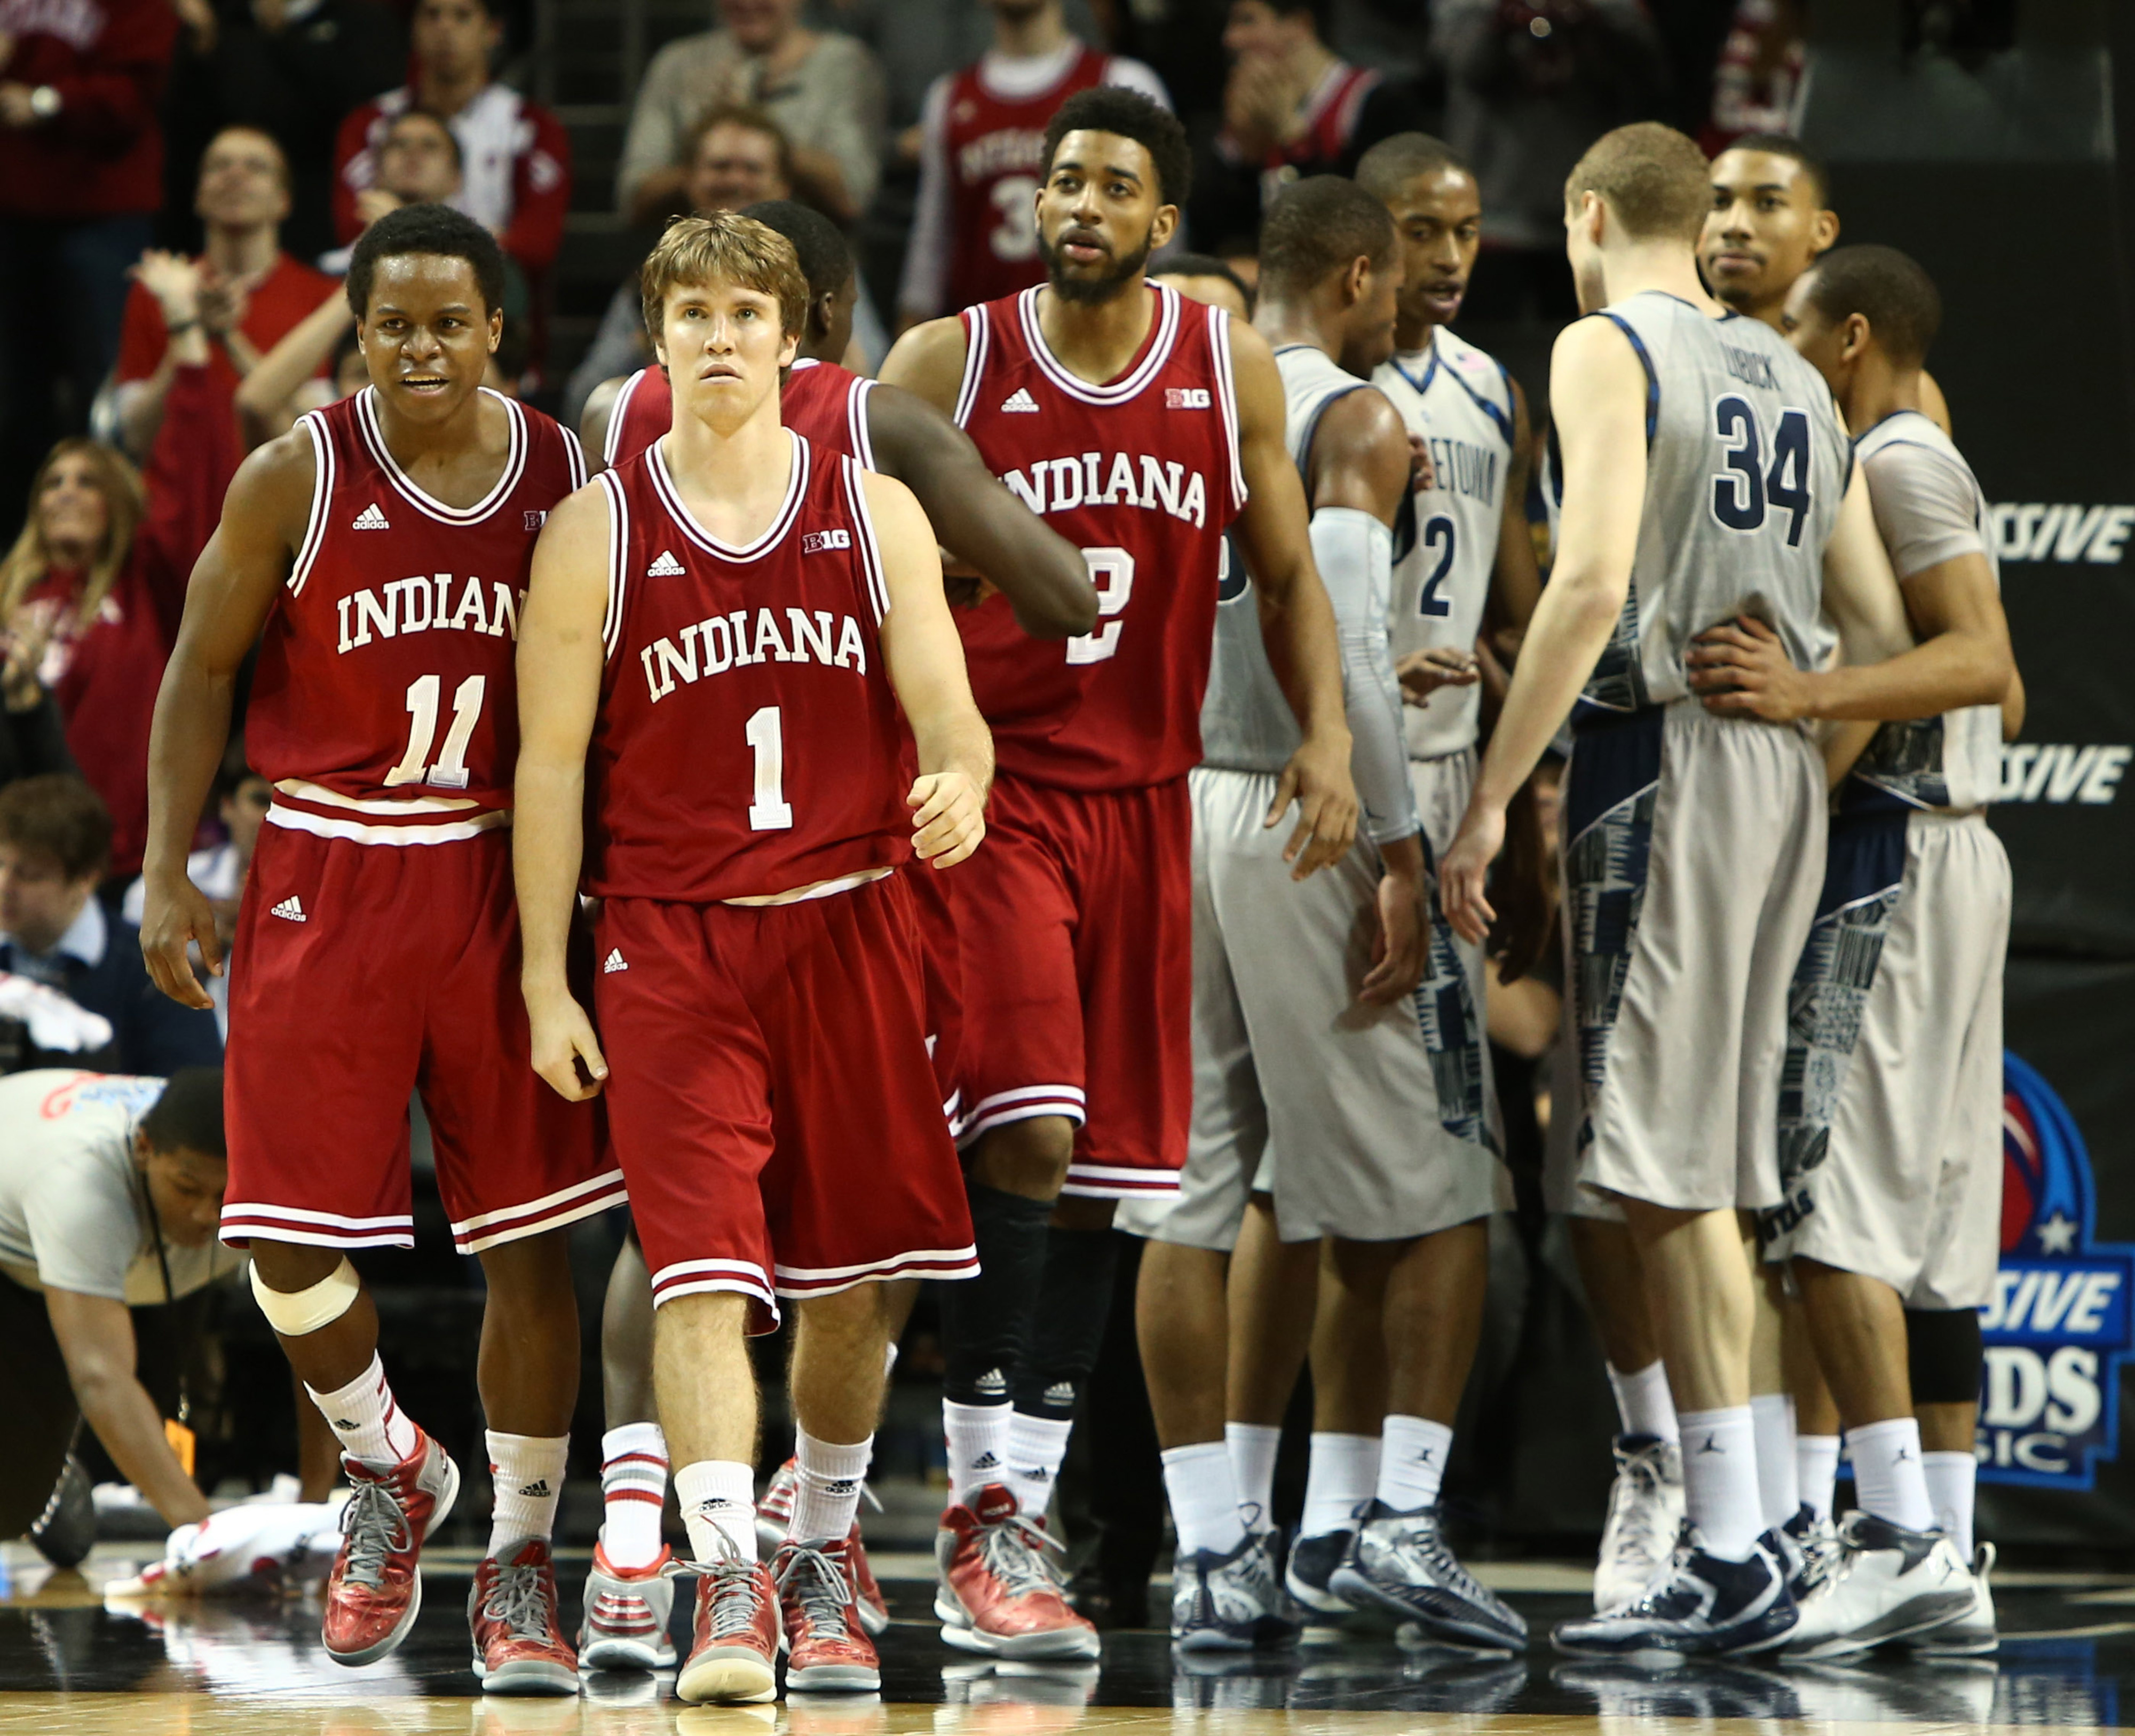 The top-ranked Hoosiers battle North Carolina in Tuesday's main event.